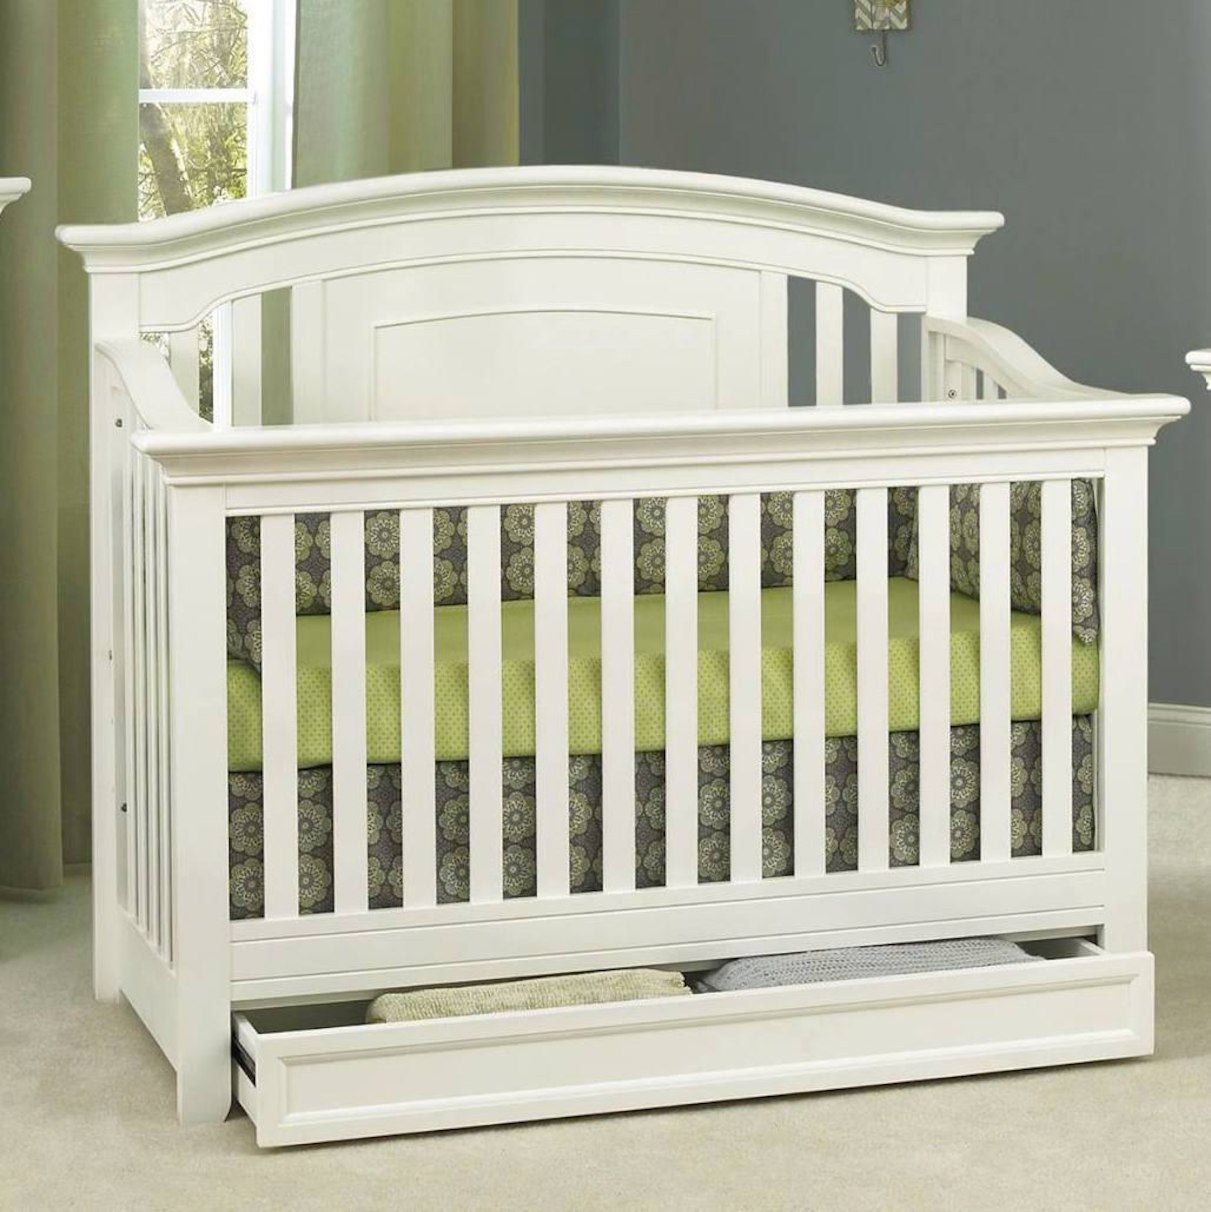 Baby Cache Harbor 4-in-1 Convertible Crib with Storage ...